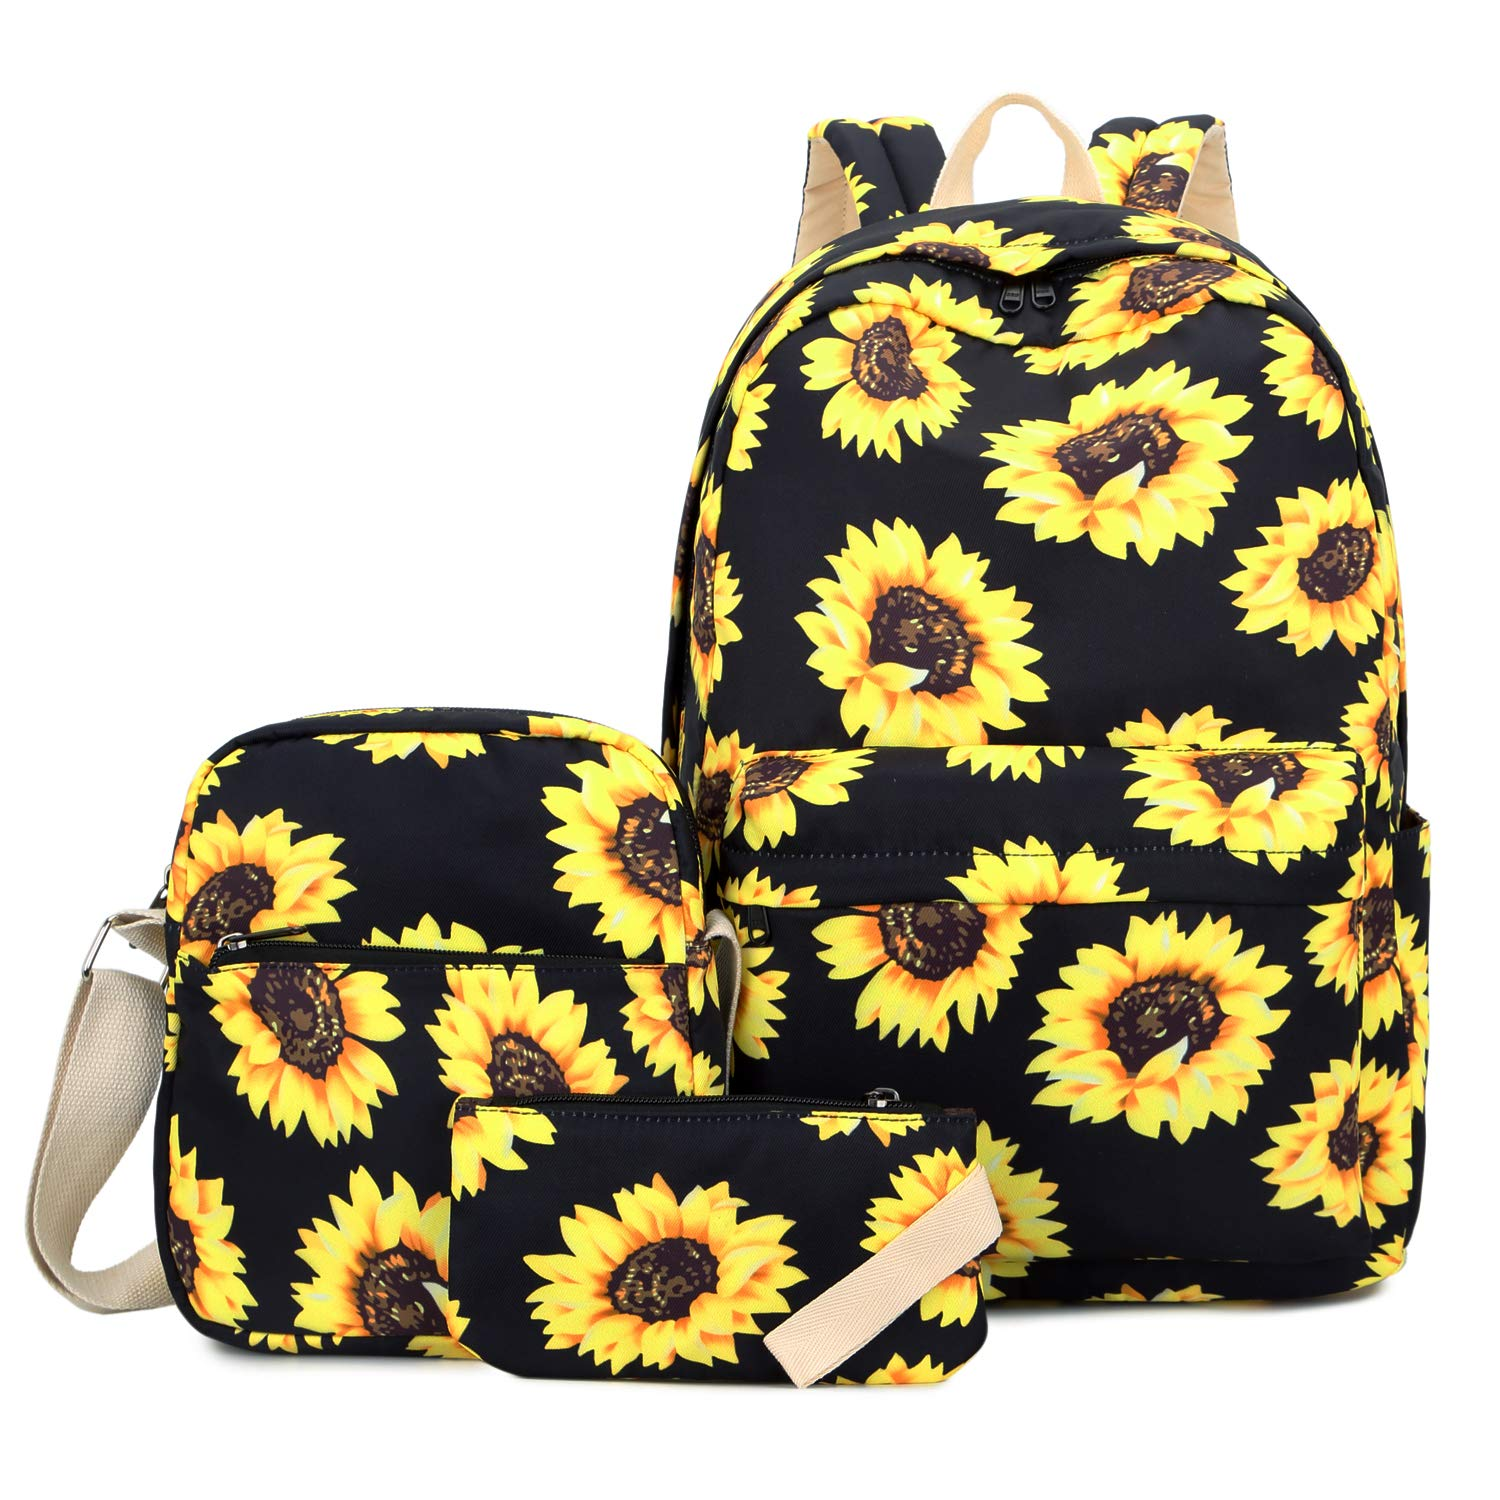 Floral Laptop Backpack, FLYMEI School Backpack for Girl, Teens Backpack with Single-shoulder Bag & Pencil Bag, Travel Casual Daypack for Women, Sunflower Kids' Backpack by FLYMEI